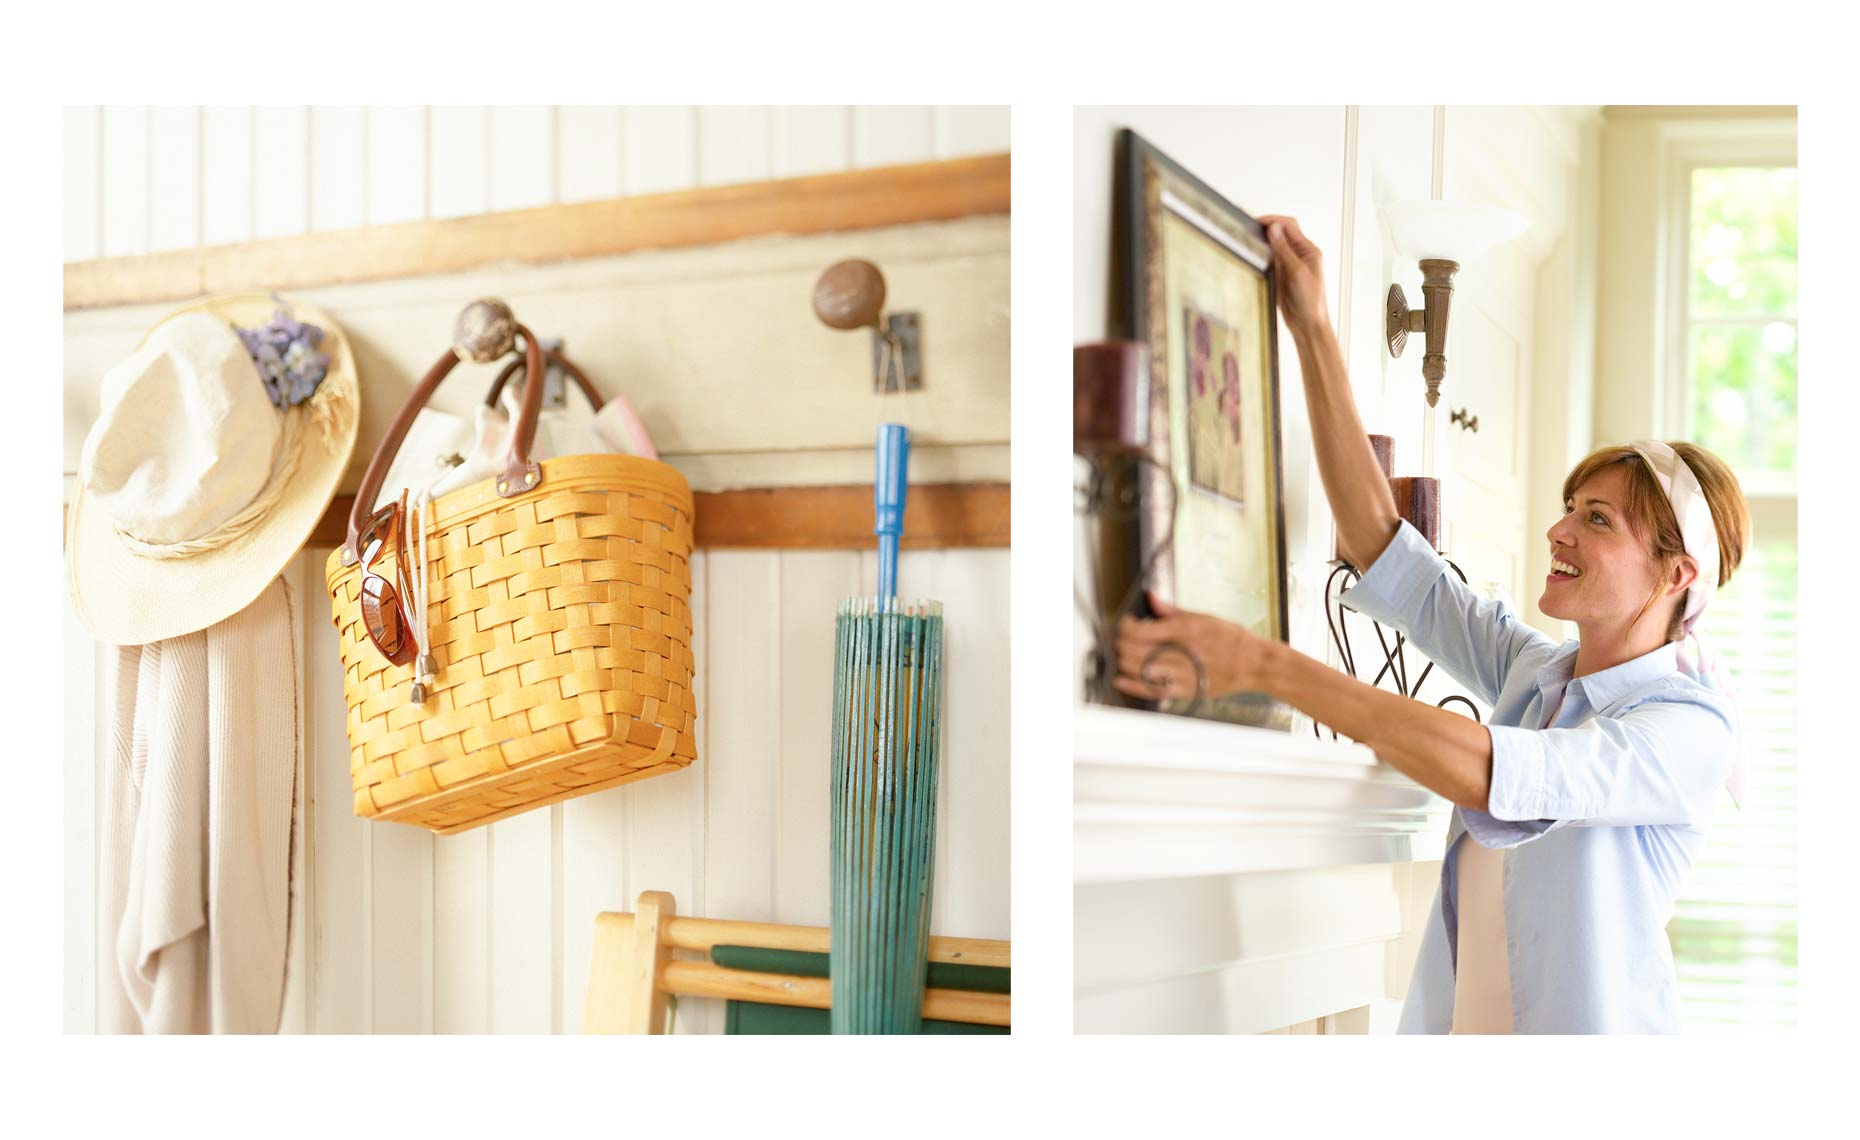 Lifestyle imagery in house for Longaberger